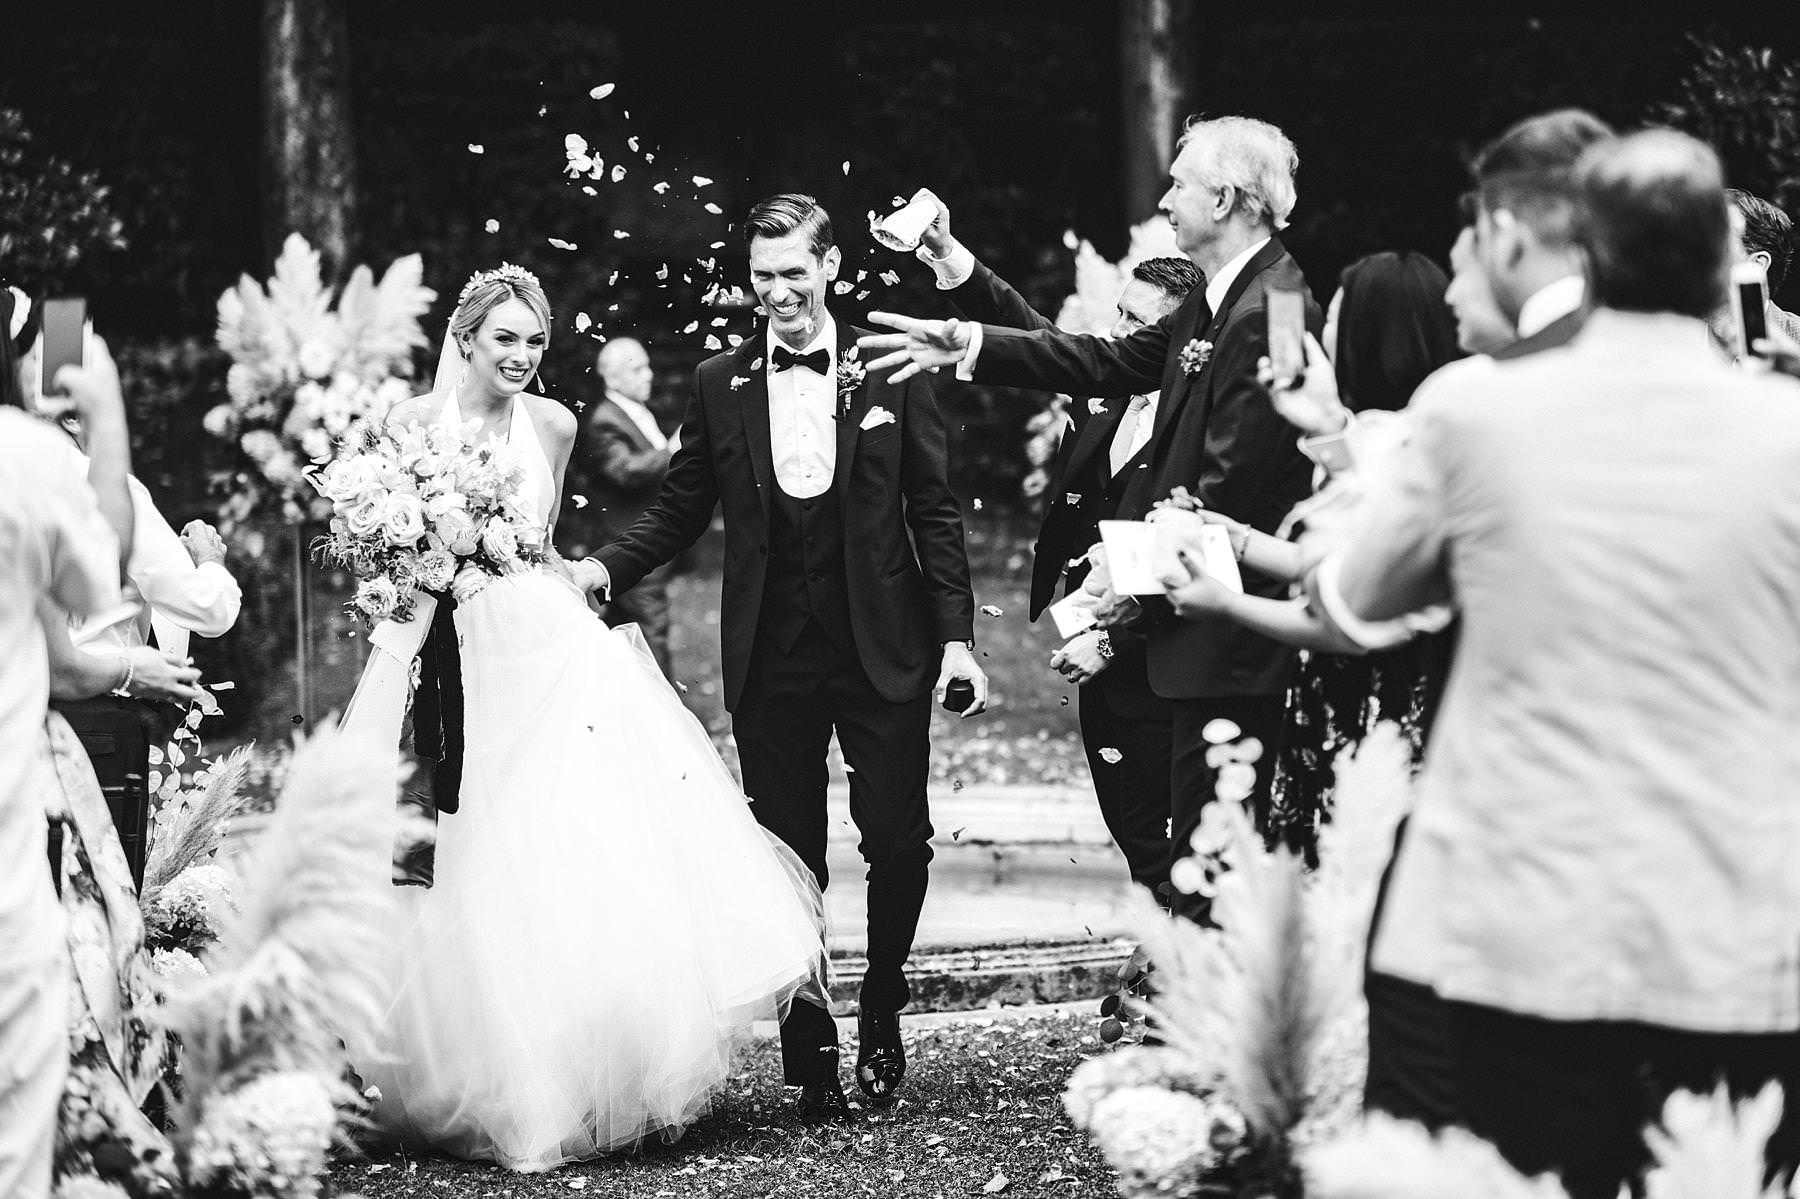 Happiness for bride and groom just married in Florence at Villa La Vedetta. Romantic and timeless wedding photo during petal throwing at the end of the outdoor intimate ceremony hosted in the Italian garden of the Villa